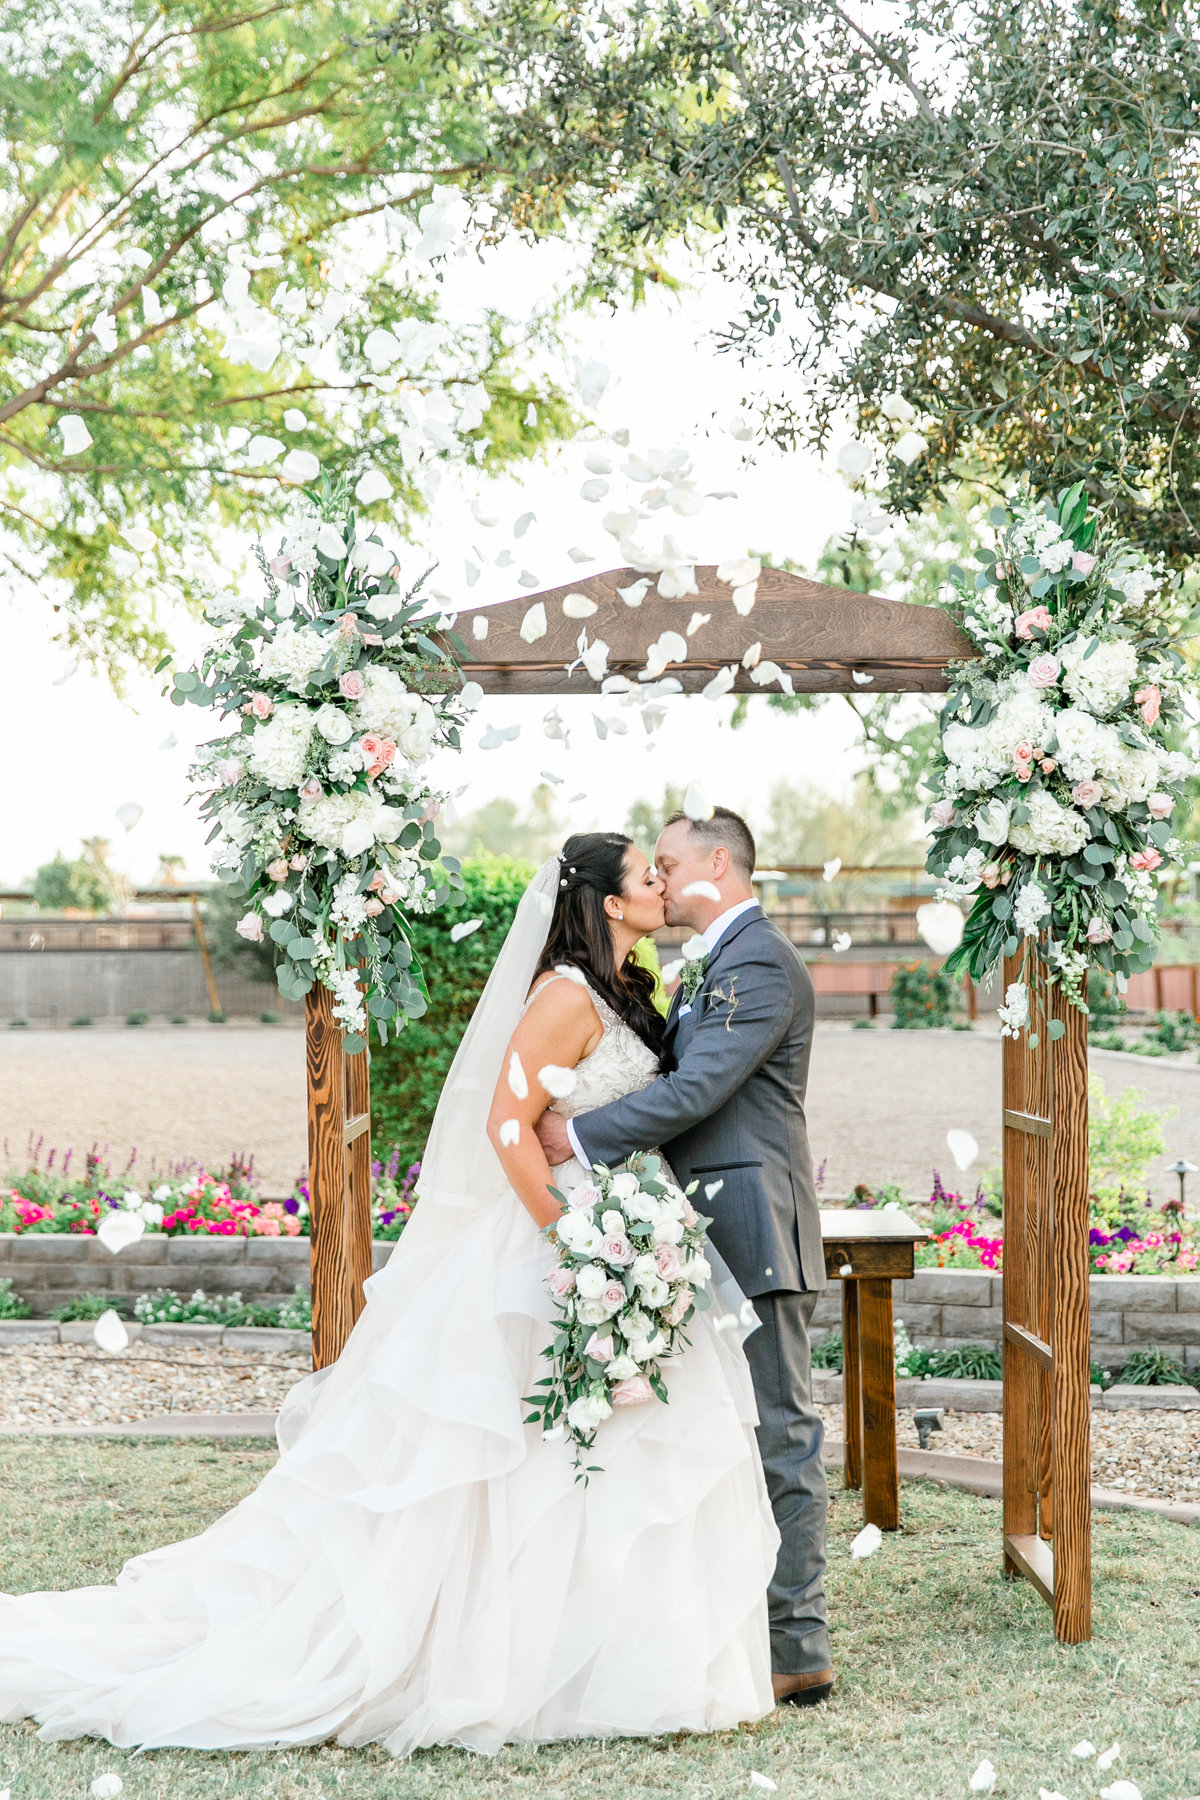 Karlie Colleen Photography - Glendale Arizona Backyard ranch wedding - Meghan & Ken-457